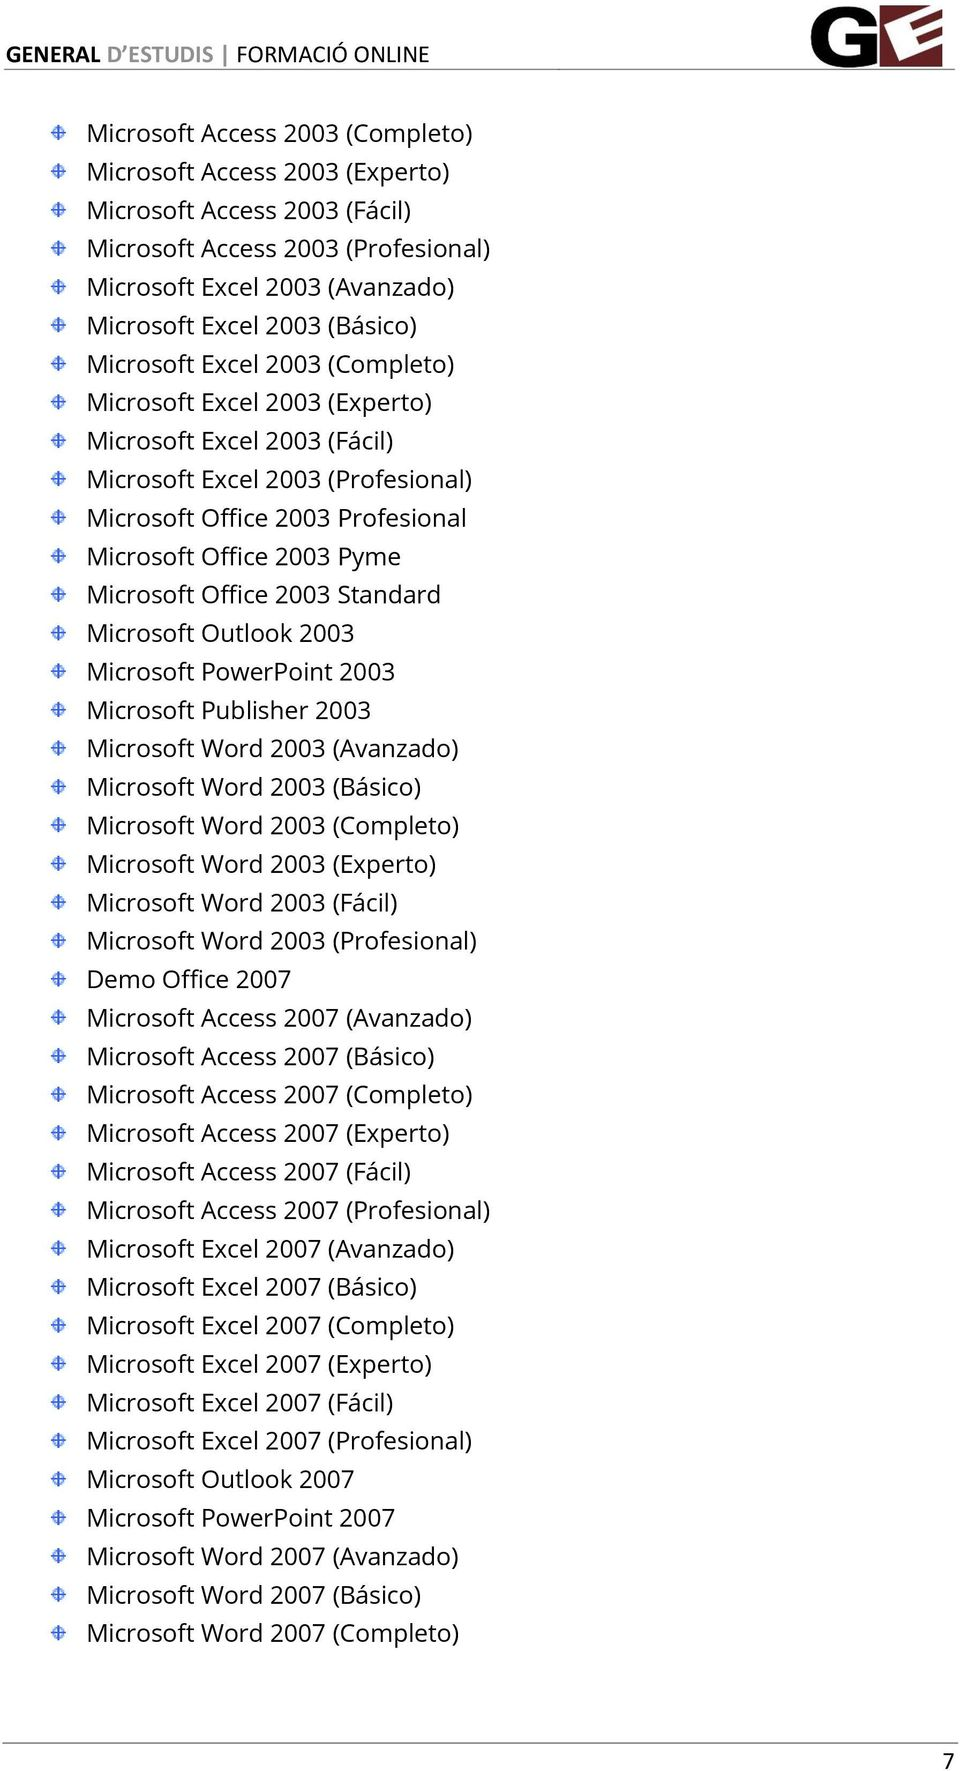 Office 2003 Standard Microsoft Outlook 2003 Microsoft PowerPoint 2003 Microsoft Publisher 2003 Microsoft Word 2003 (Avanzado) Microsoft Word 2003 (Básico) Microsoft Word 2003 (Completo) Microsoft